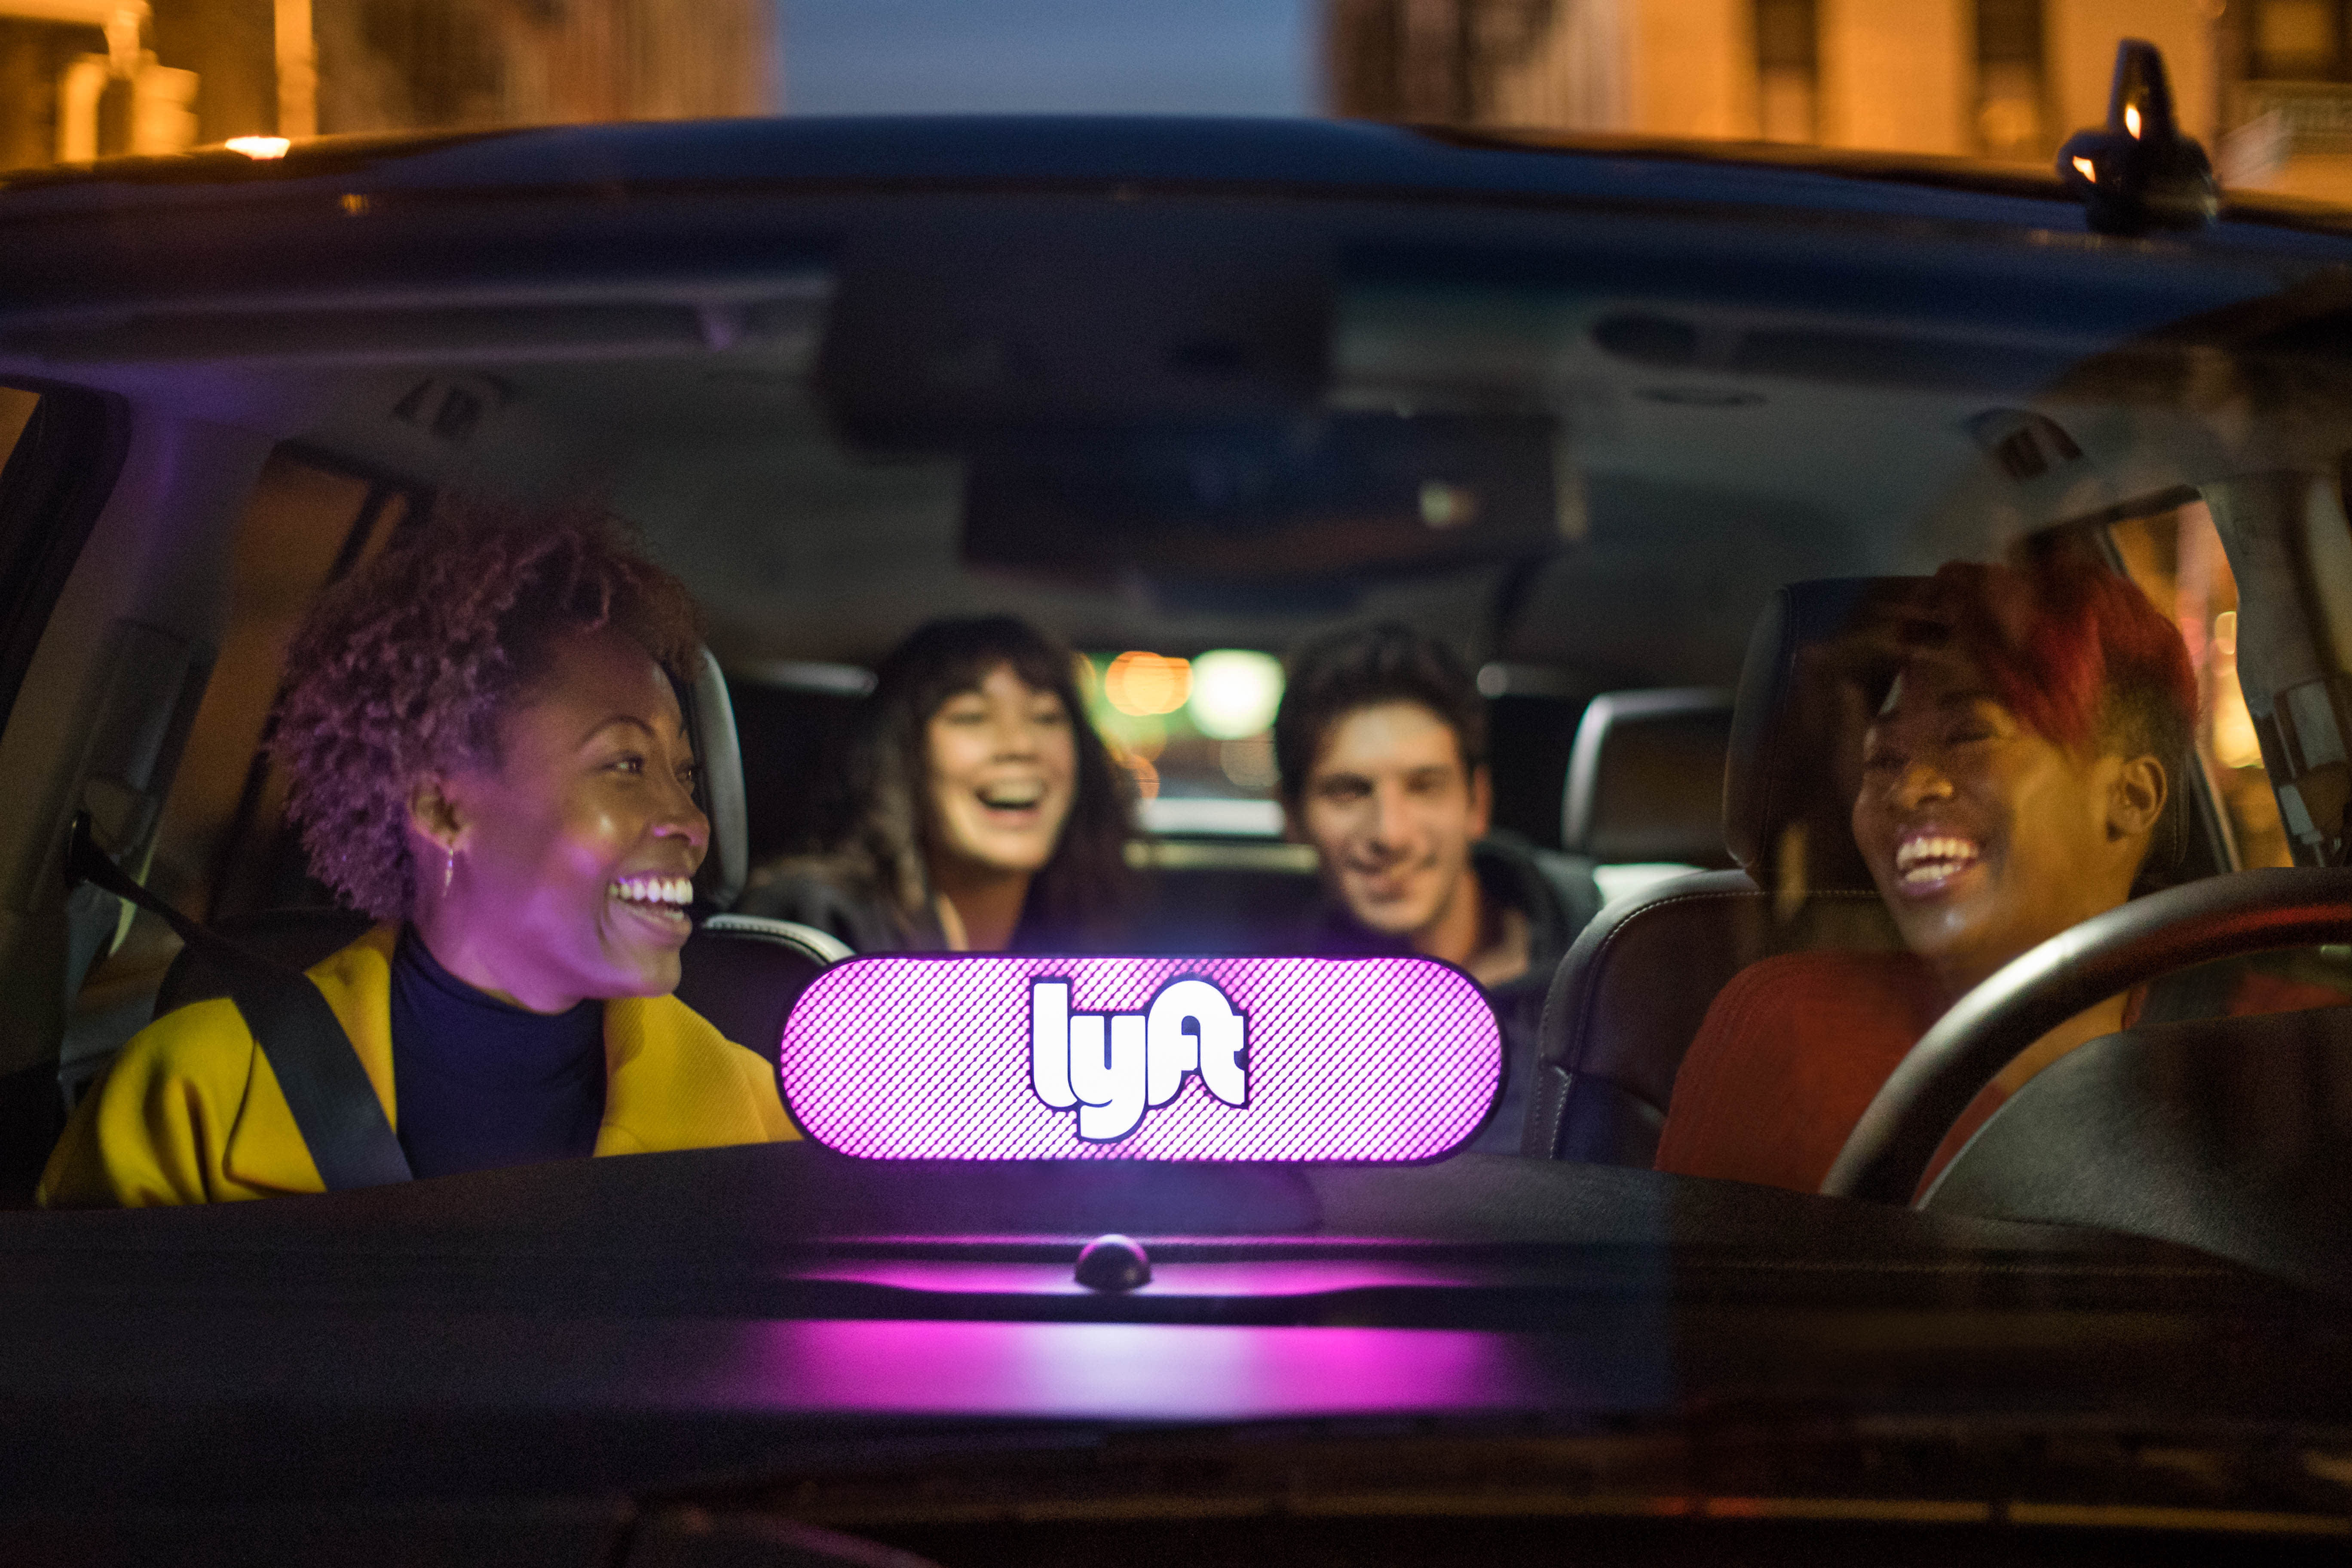 Me Touch Unlimited Avis lyft announces car rental service; hertz and avis shares plunge